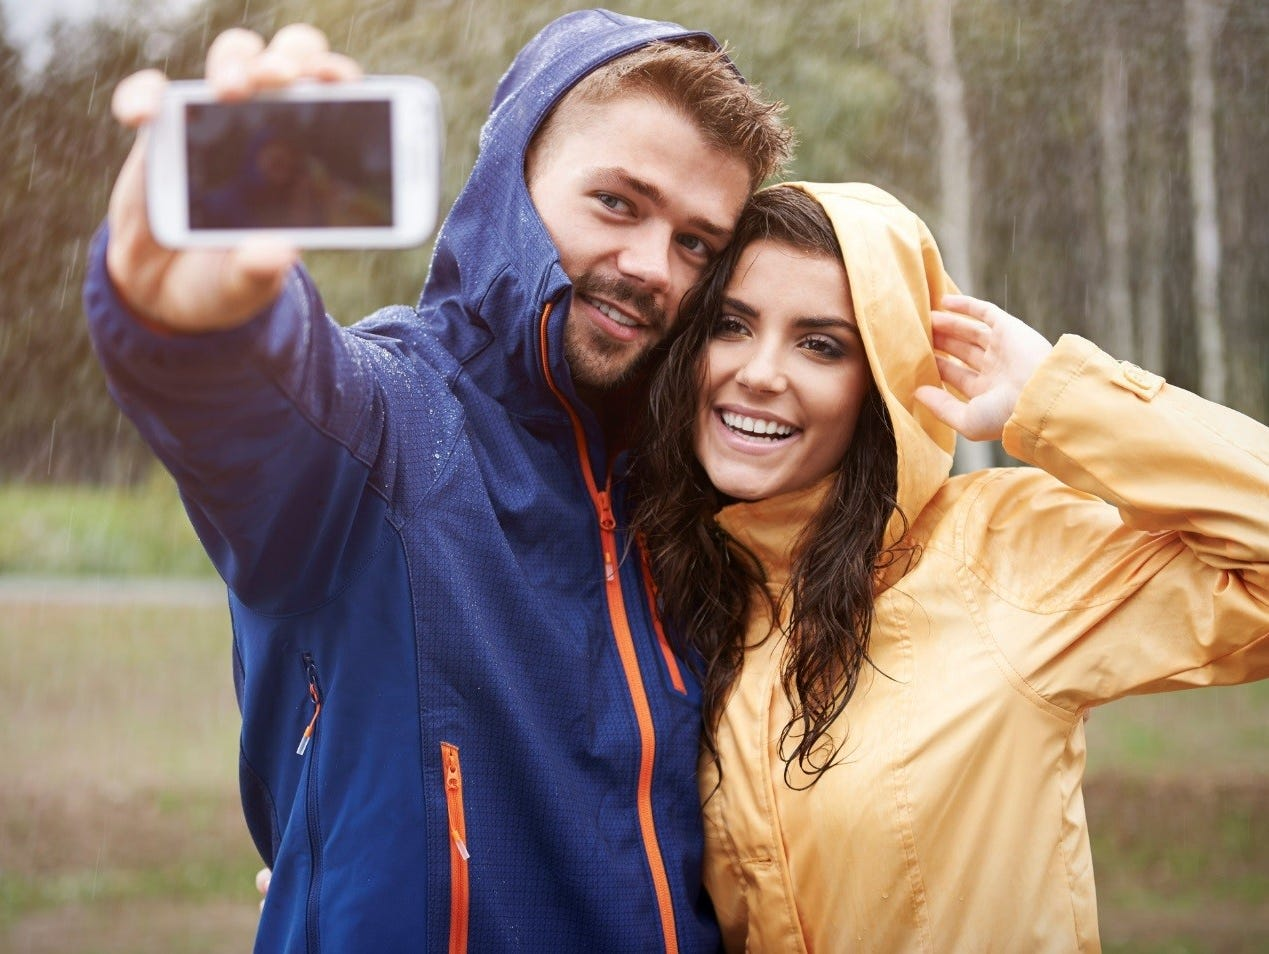 Protect your phone during upcoming rainy days with $50 to spend at Best Buy.  Enter 4/3-4/24.